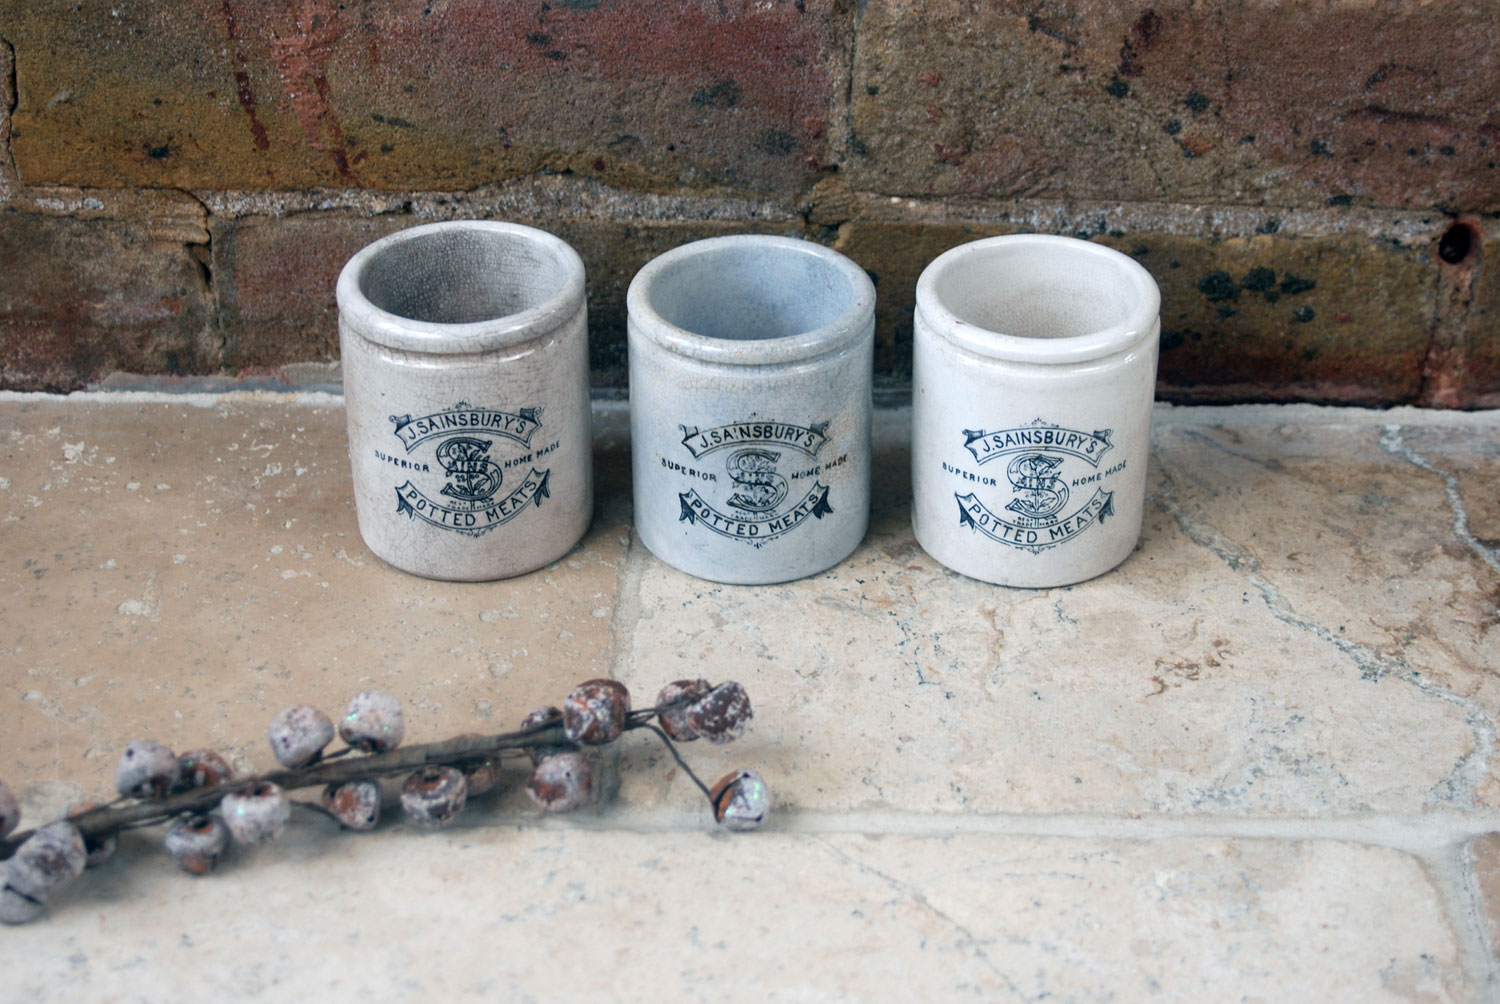 Antique Victorian large J Sainisburys paste pots english advertising white ironstone crocks